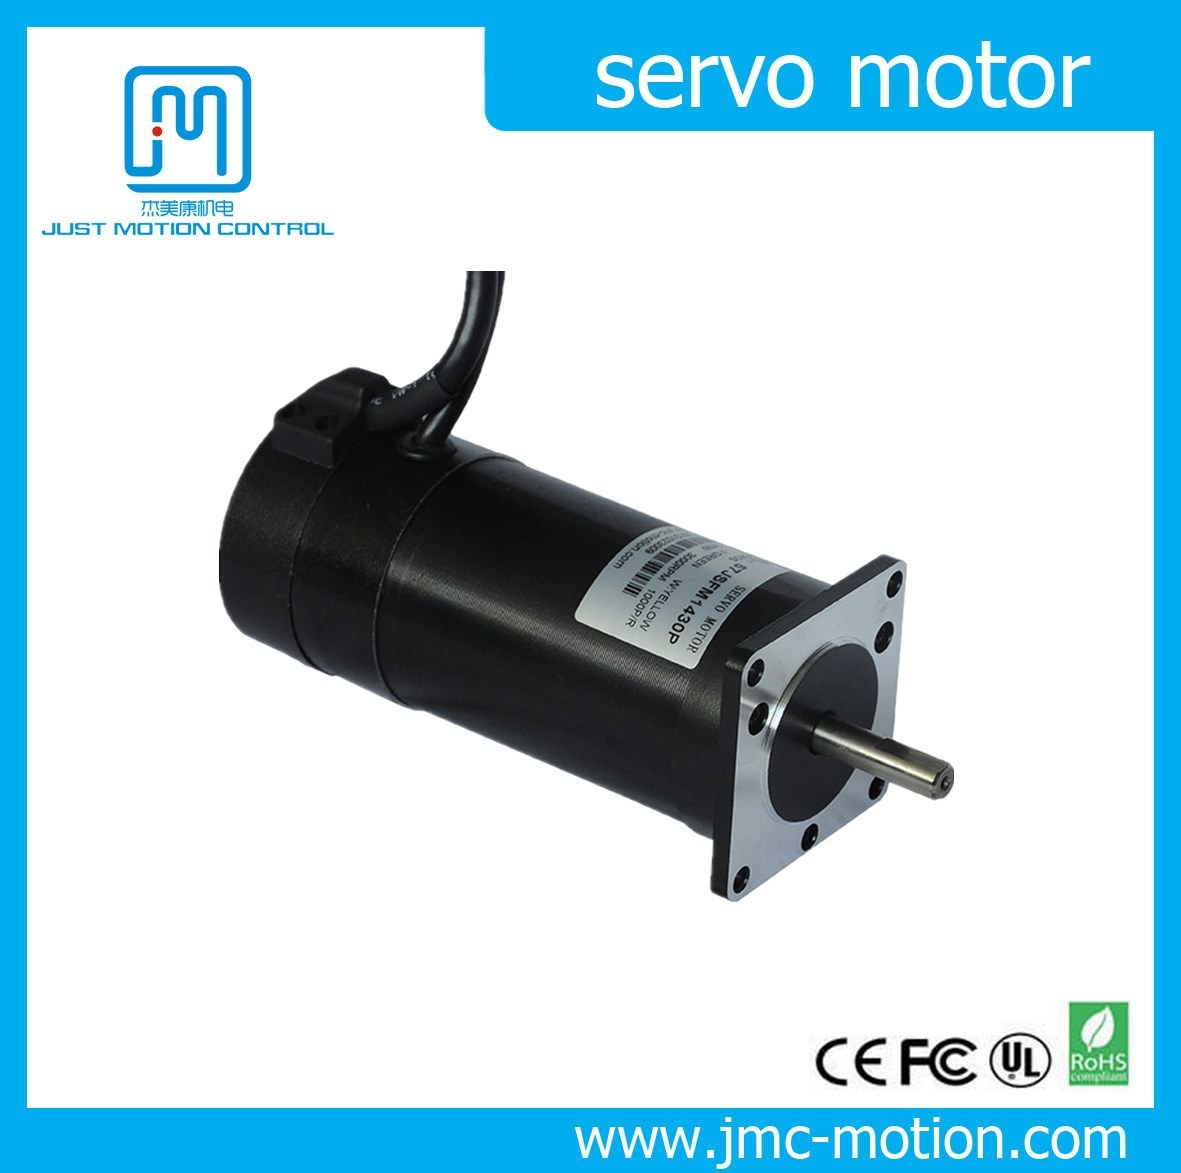 Jmc 140W High Speed Brushless AC Servo Motor 3000rpm with Encoder